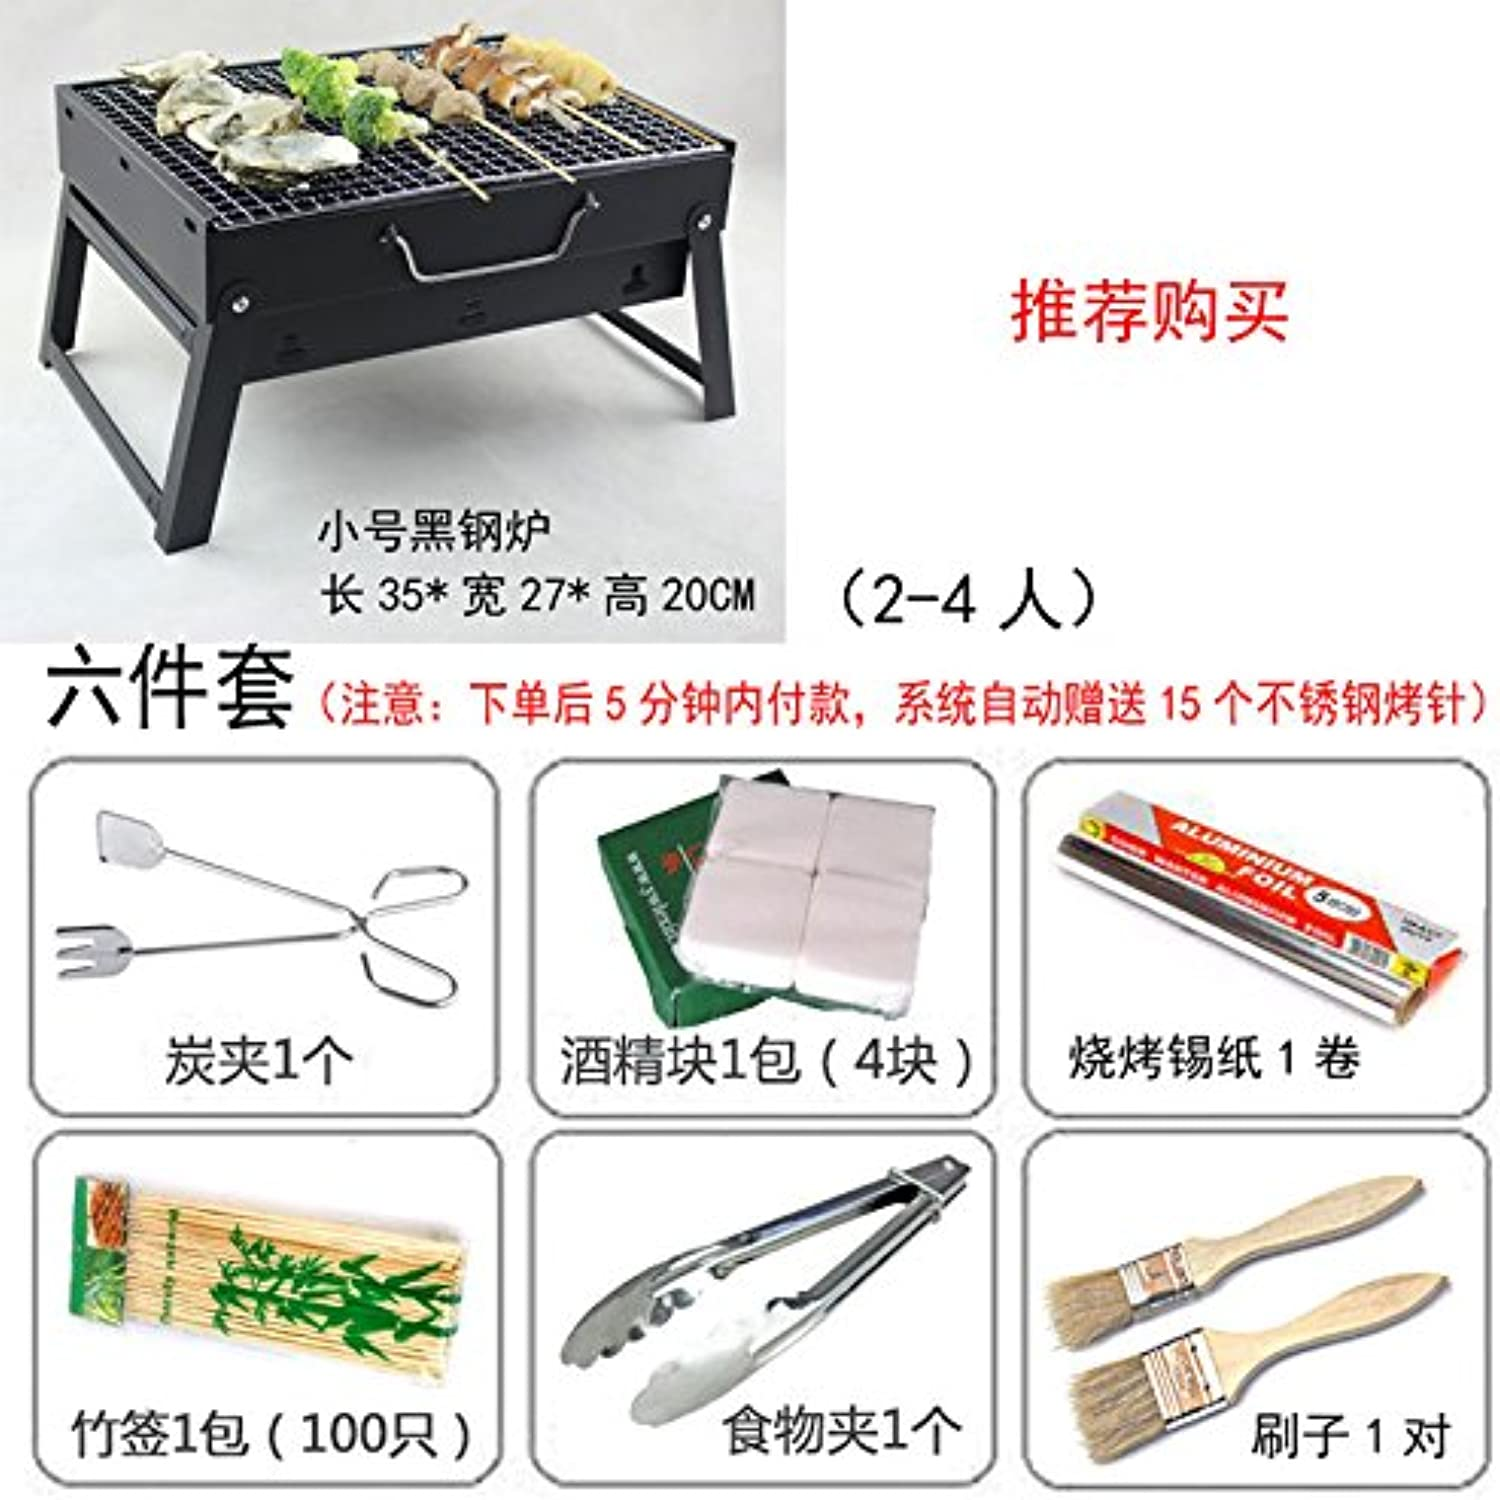 Portable thick grill oven outdoor charcoal grills fold home kit full barbecue stove , non-smoking small black steel +6 Kit with 15 Roasted Pin